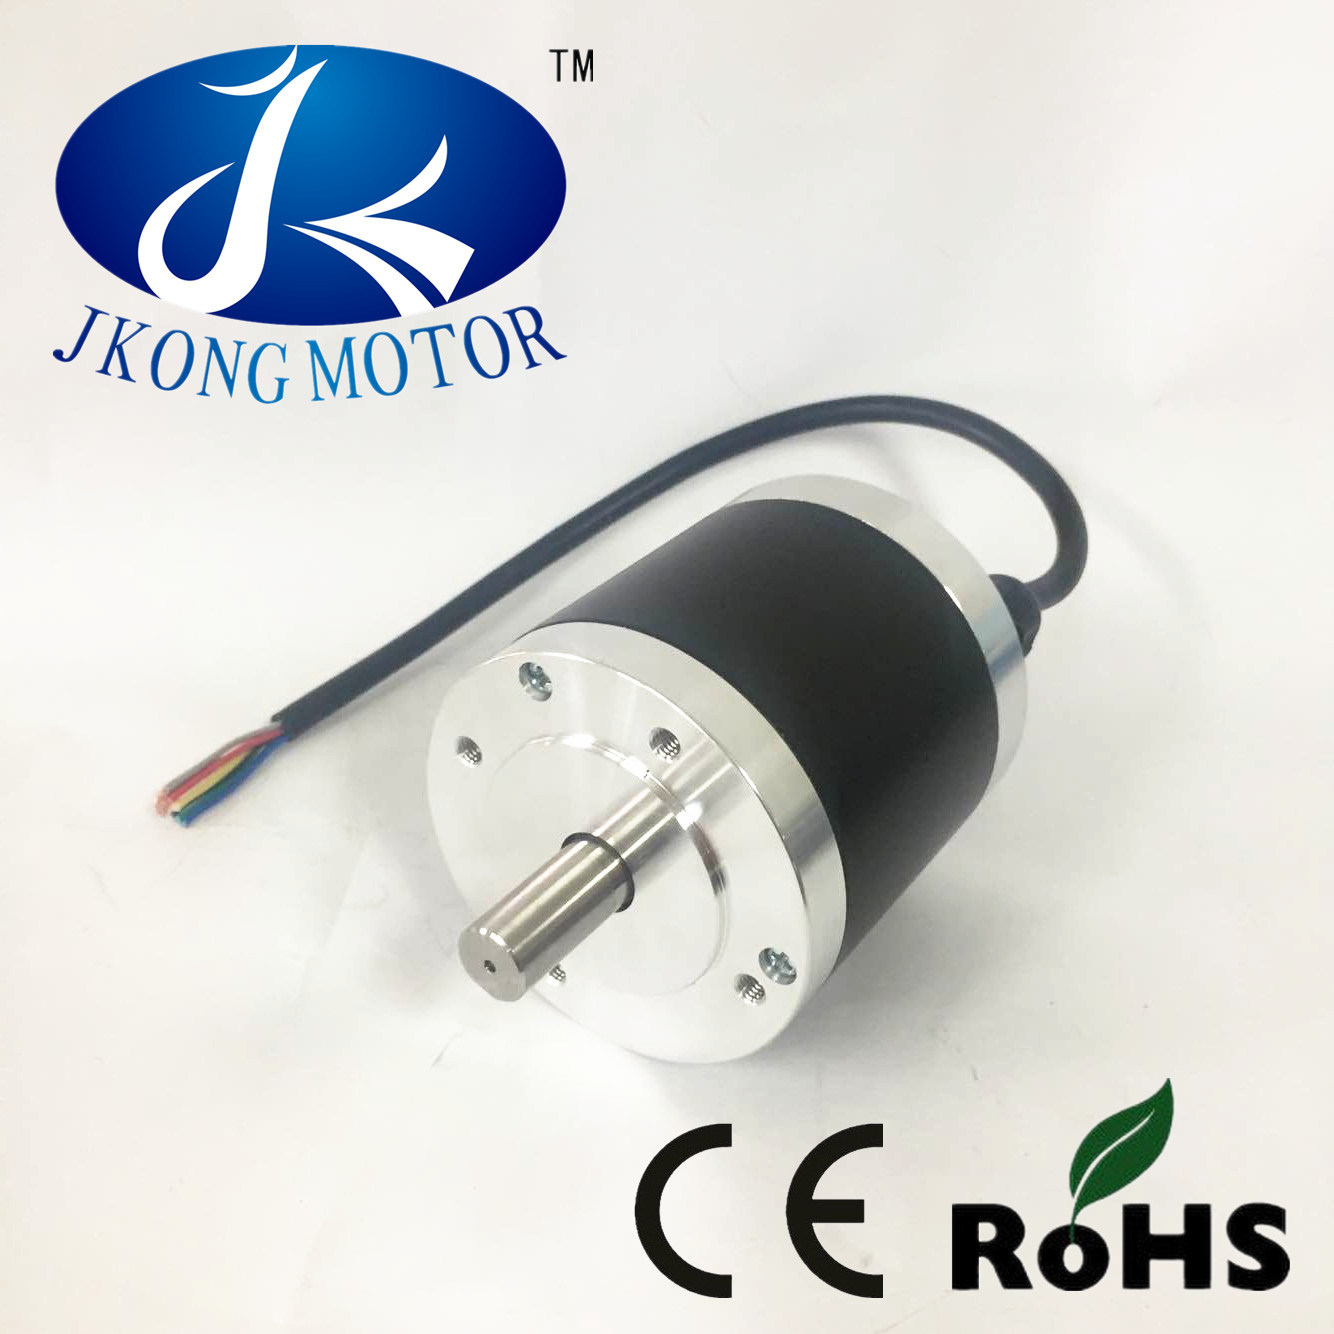 Jk80bls01-01 Waterproof Brushless DC Motor 100W pictures & photos